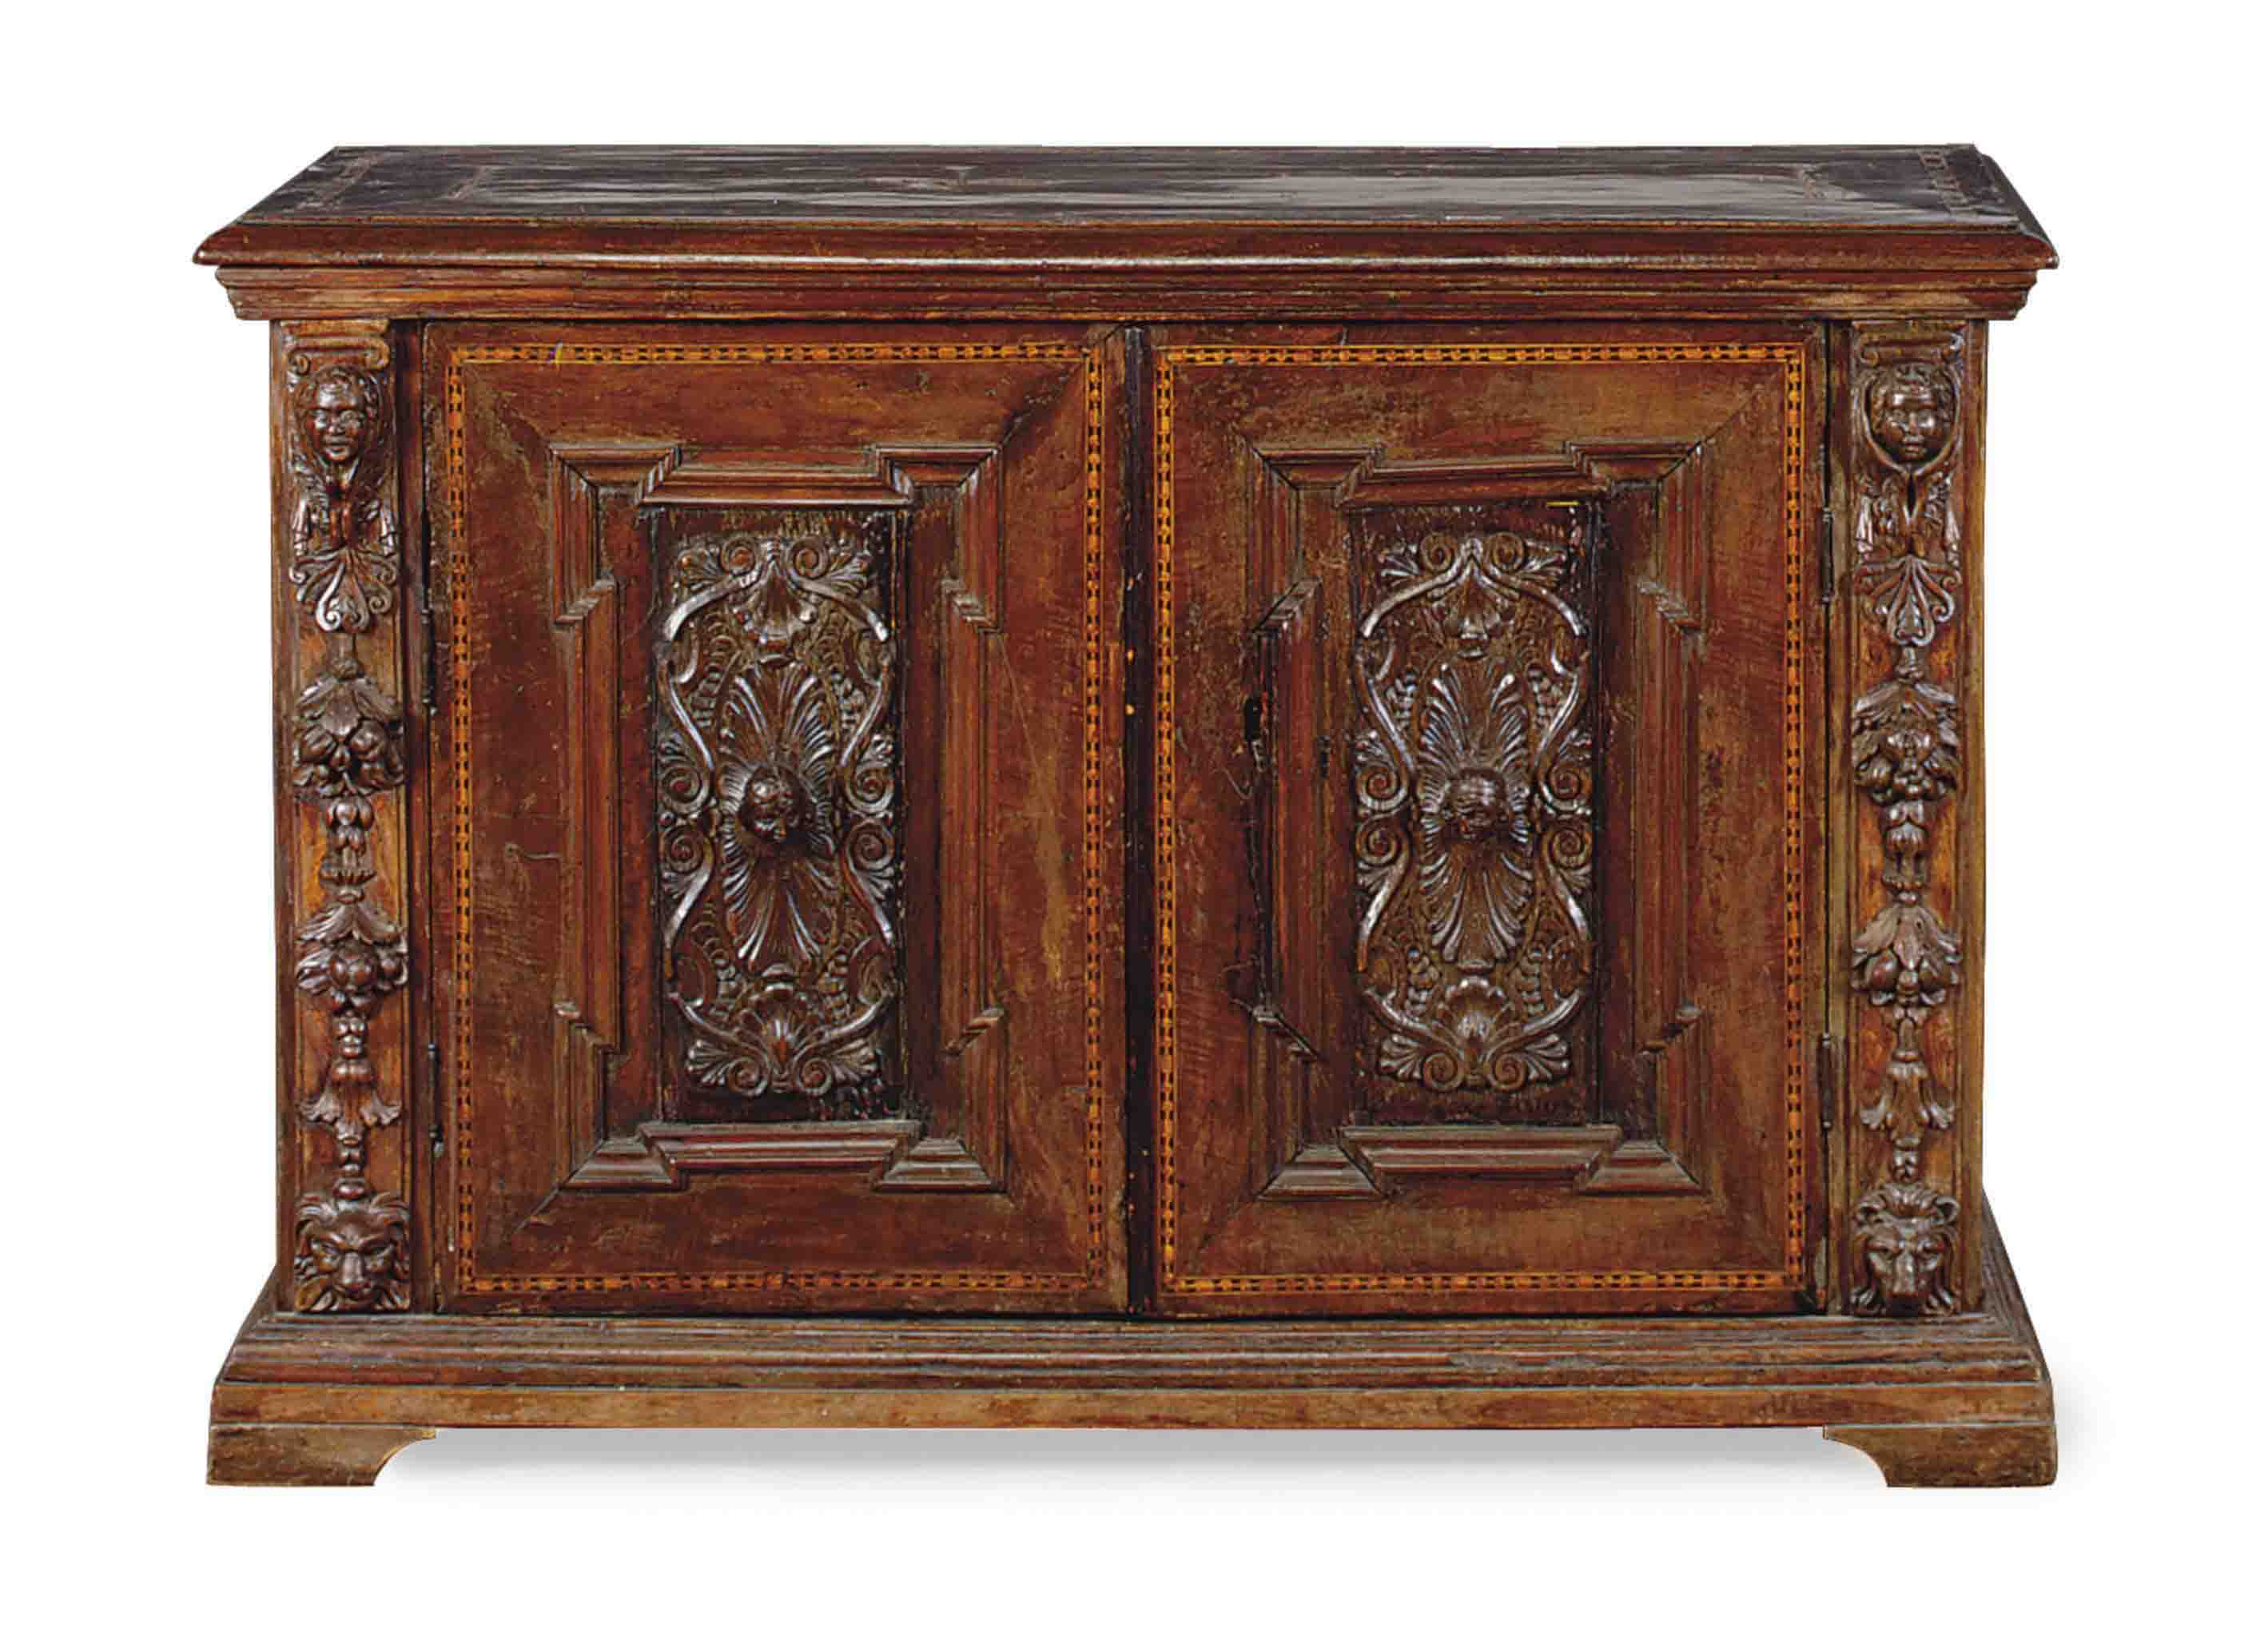 AN ITALIAN INALID AND CARVED WALNUT CREDENZA,